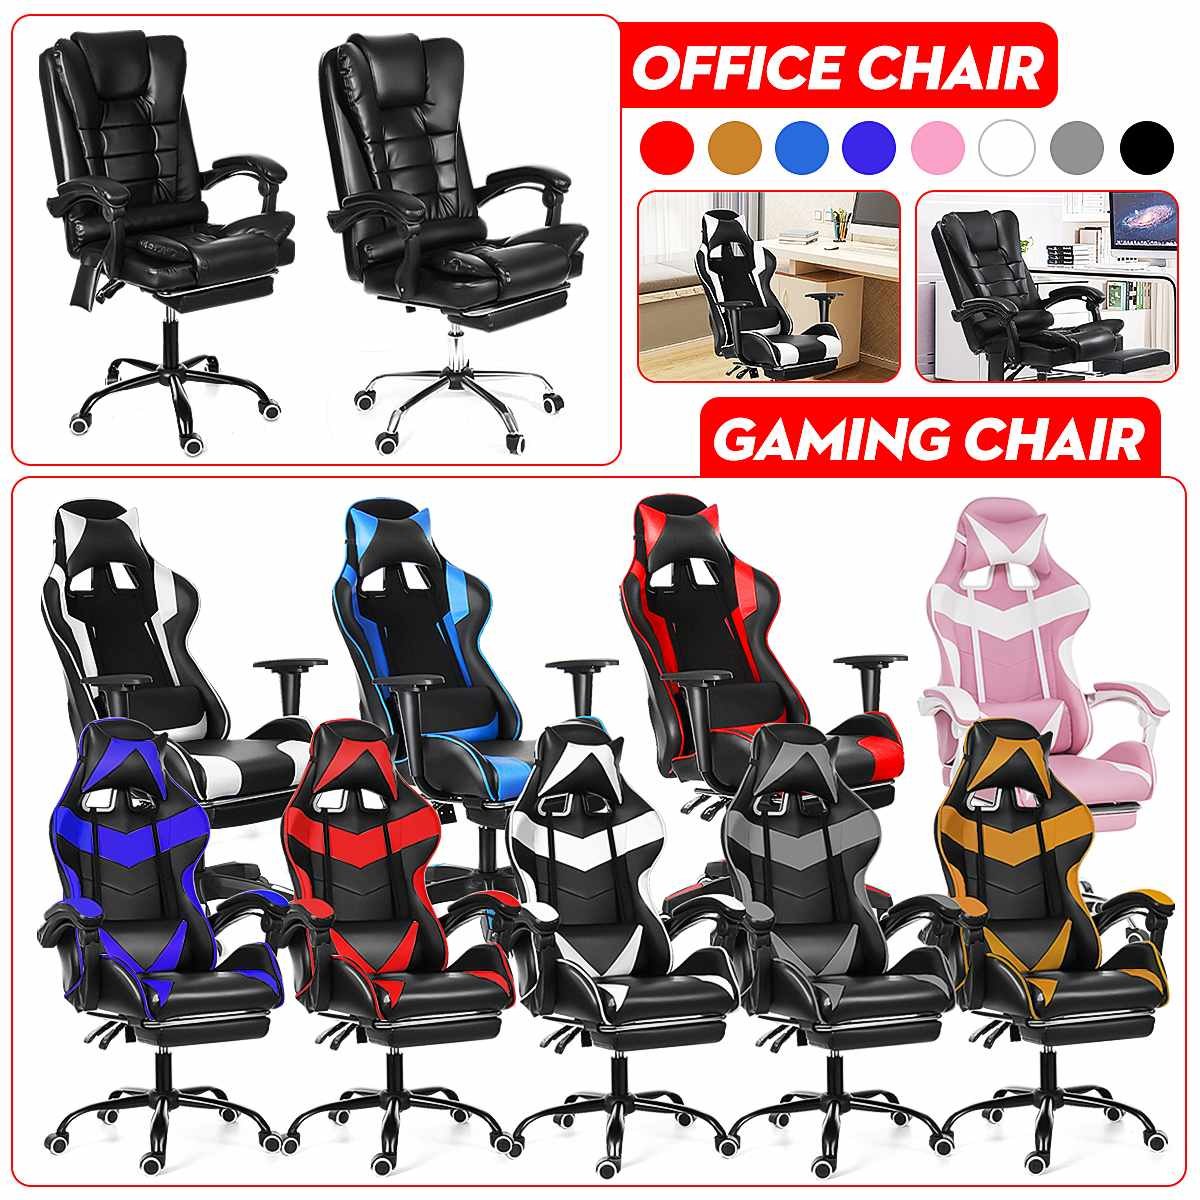 H9e4cc495f2a94983909c3ddd44fccc1d3 - WCG Gaming Chair Computer Armchair Office Chairs Home Swivel Massage Chair Lifting Adjustable Desk Chair Lying Recliner Chair